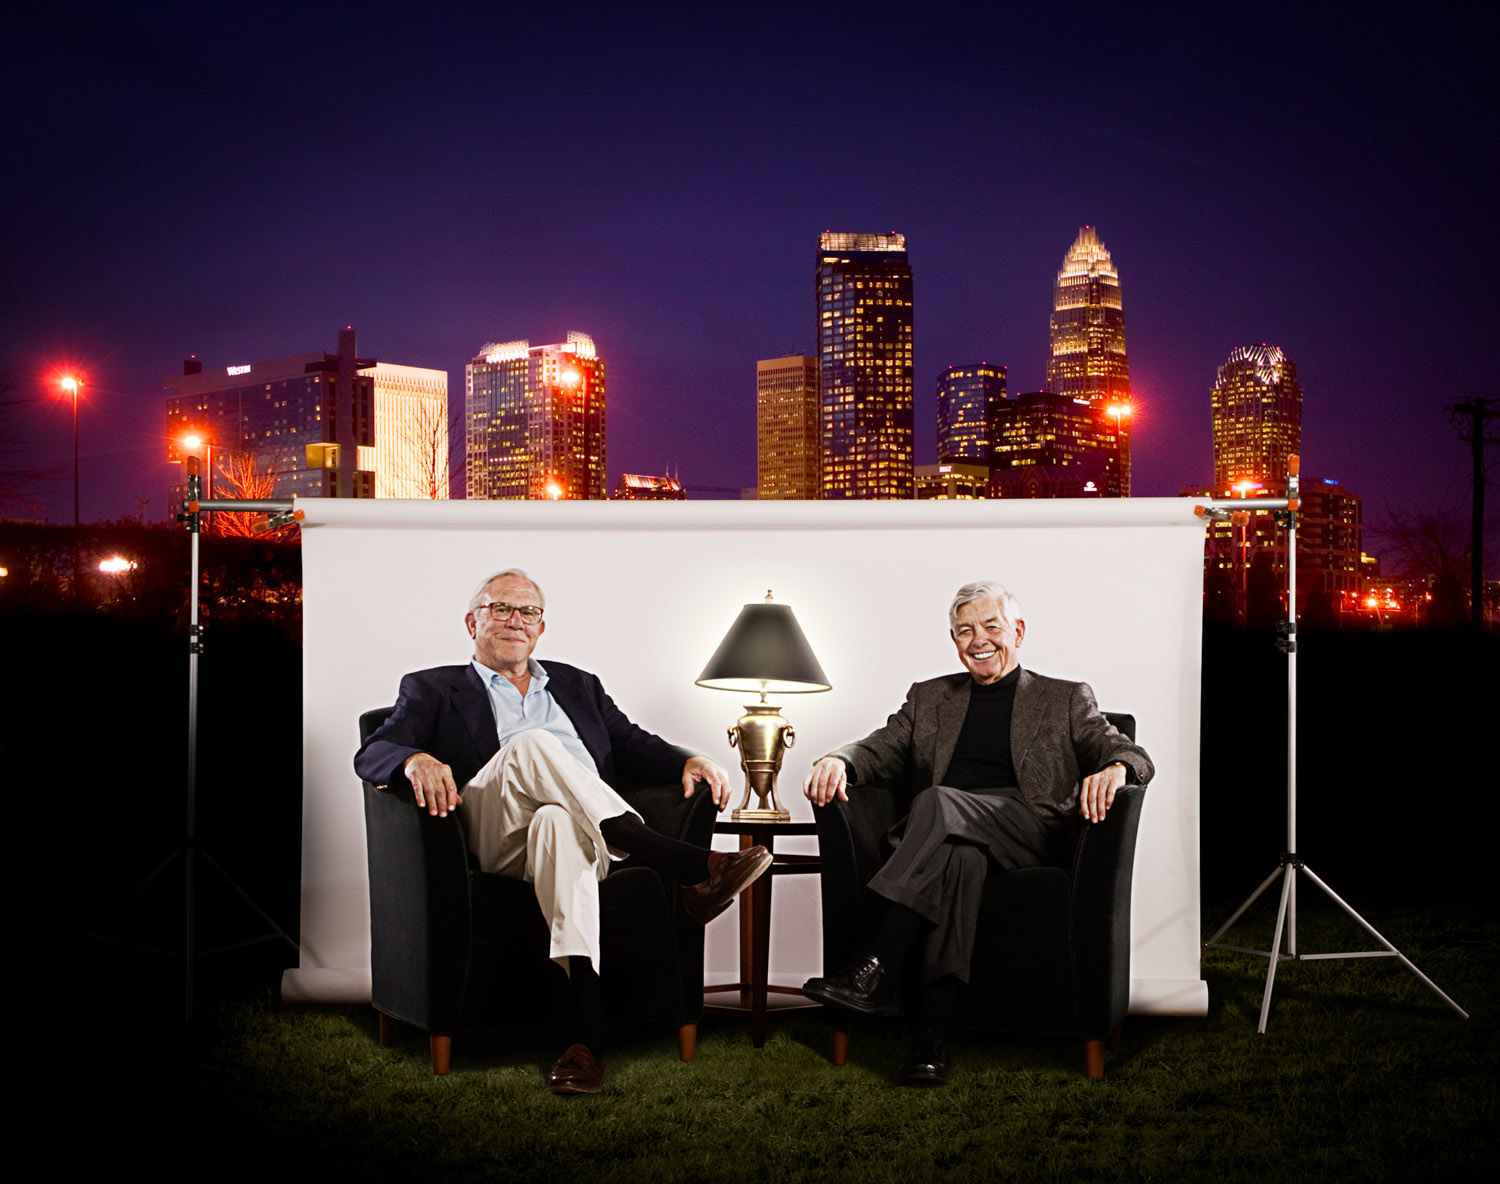 Ed Crutchfield and Hugh McColl, Jr. (2006), CEOs of First Union Bank and Bank of America, retired